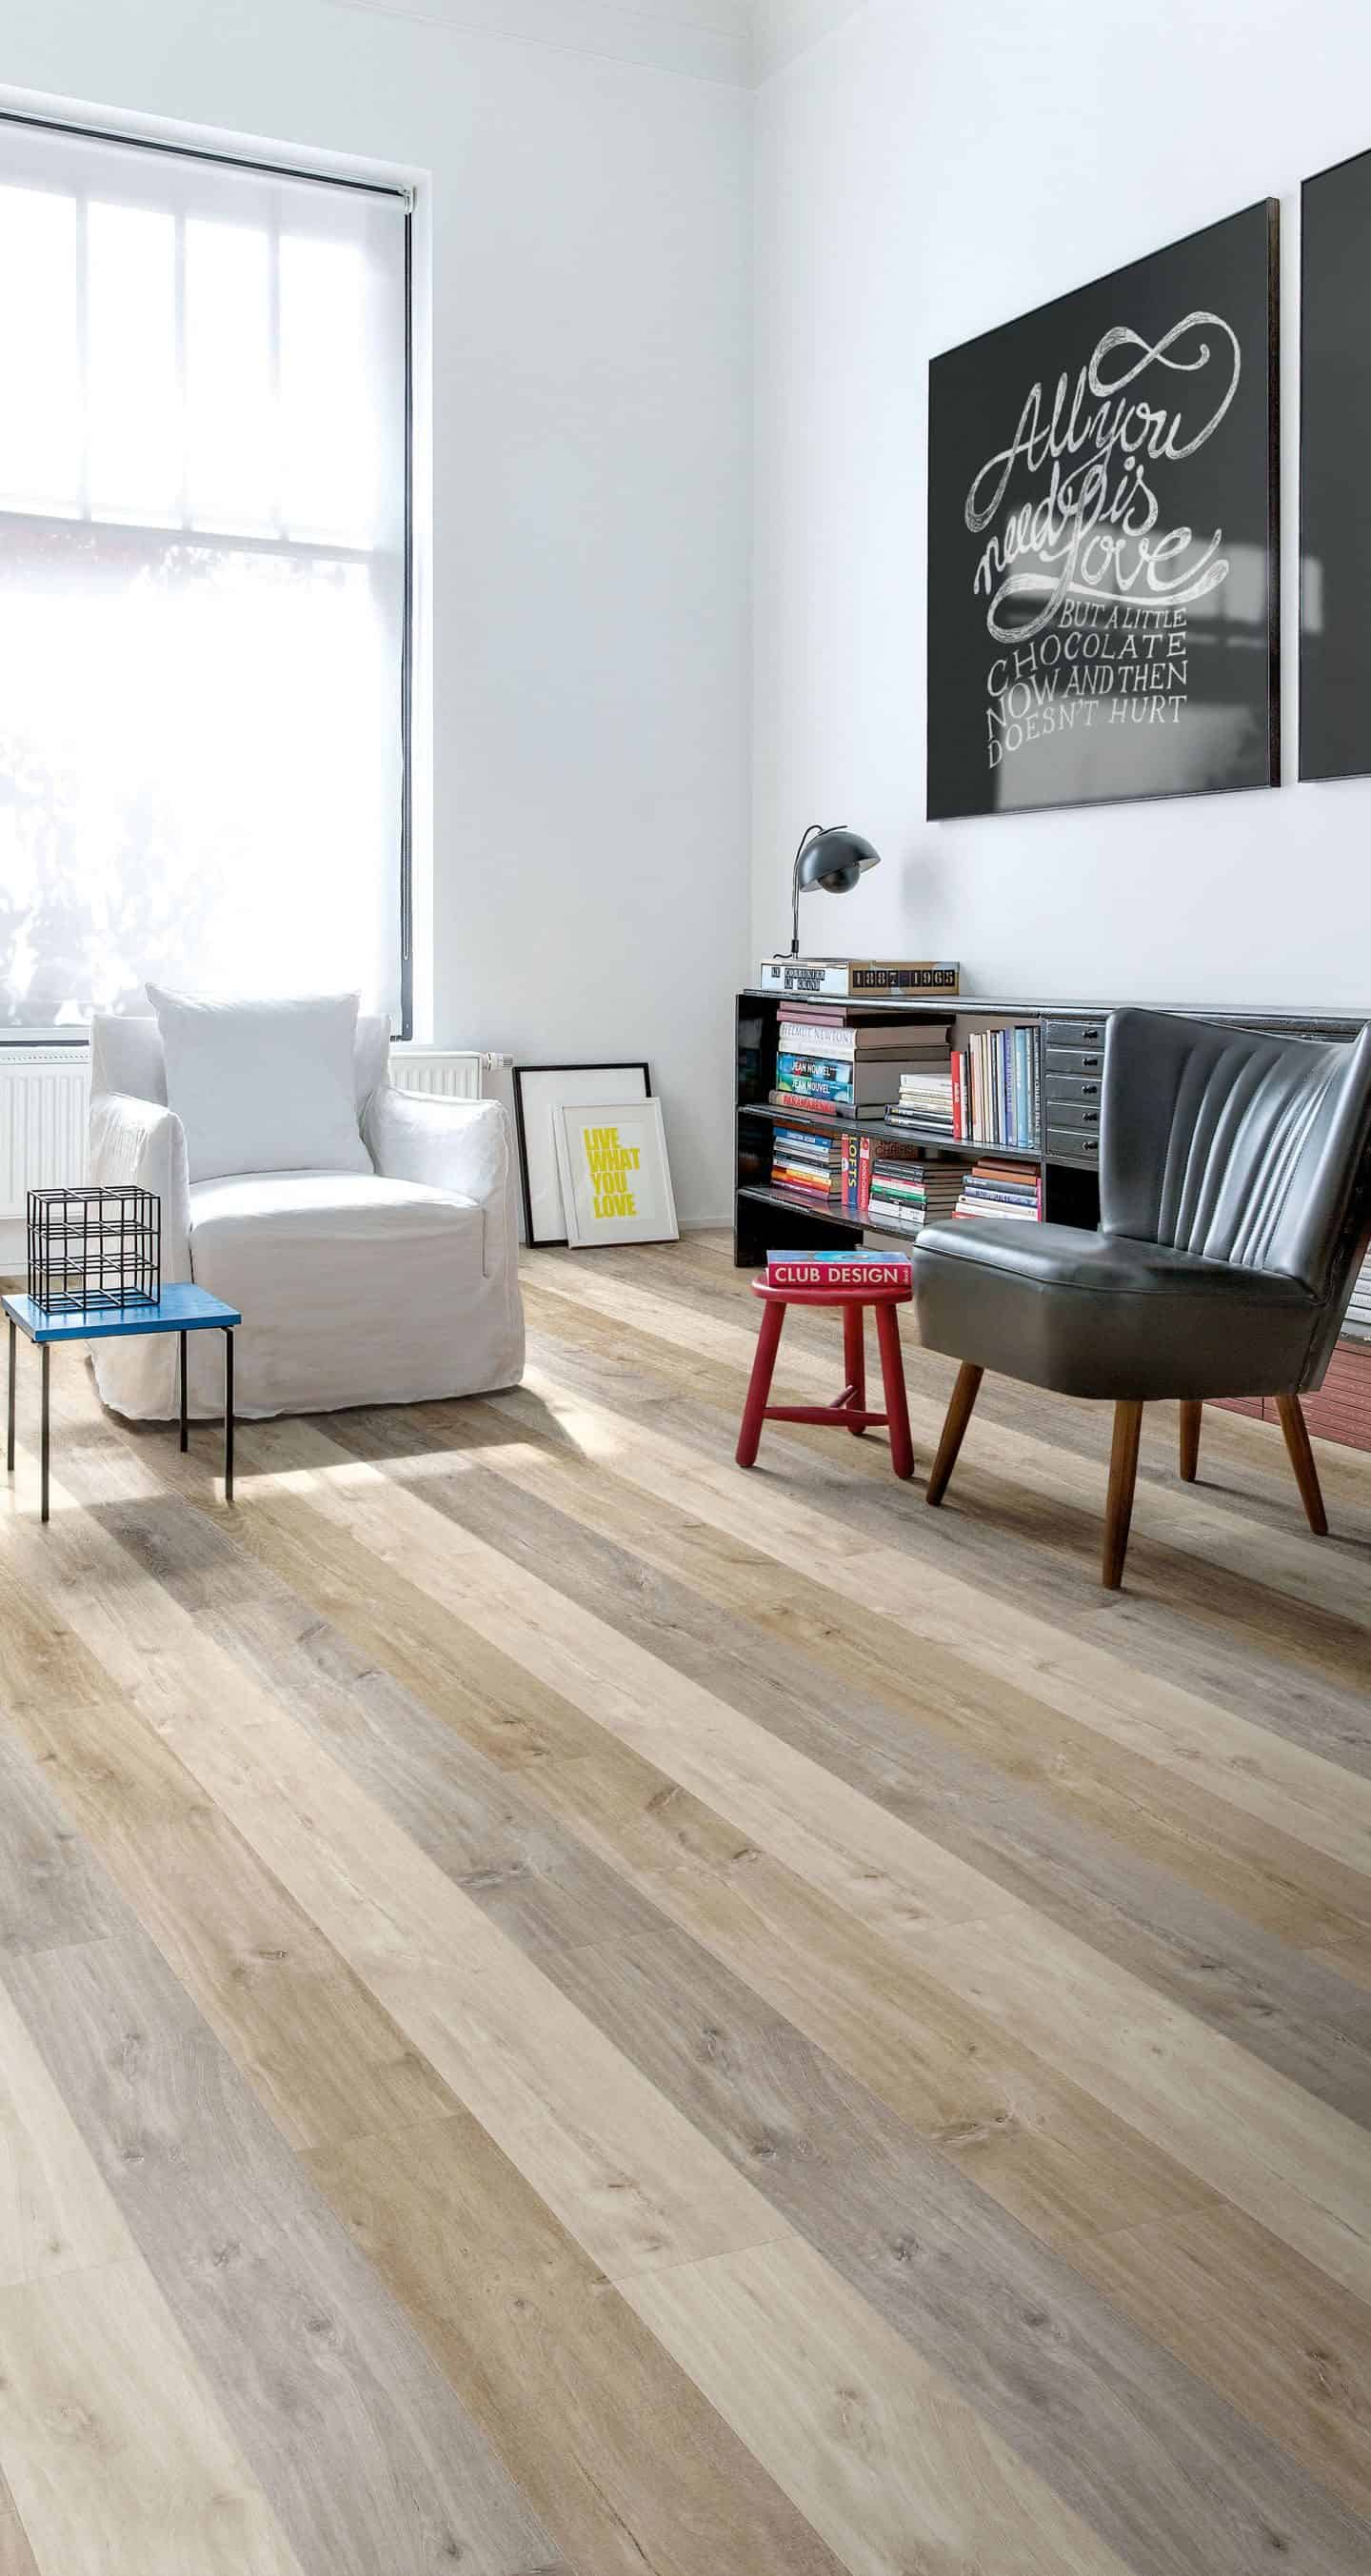 Flooring Trends - Quickstep Flooring using planks in different wood finishes to create a mix-and-match effect